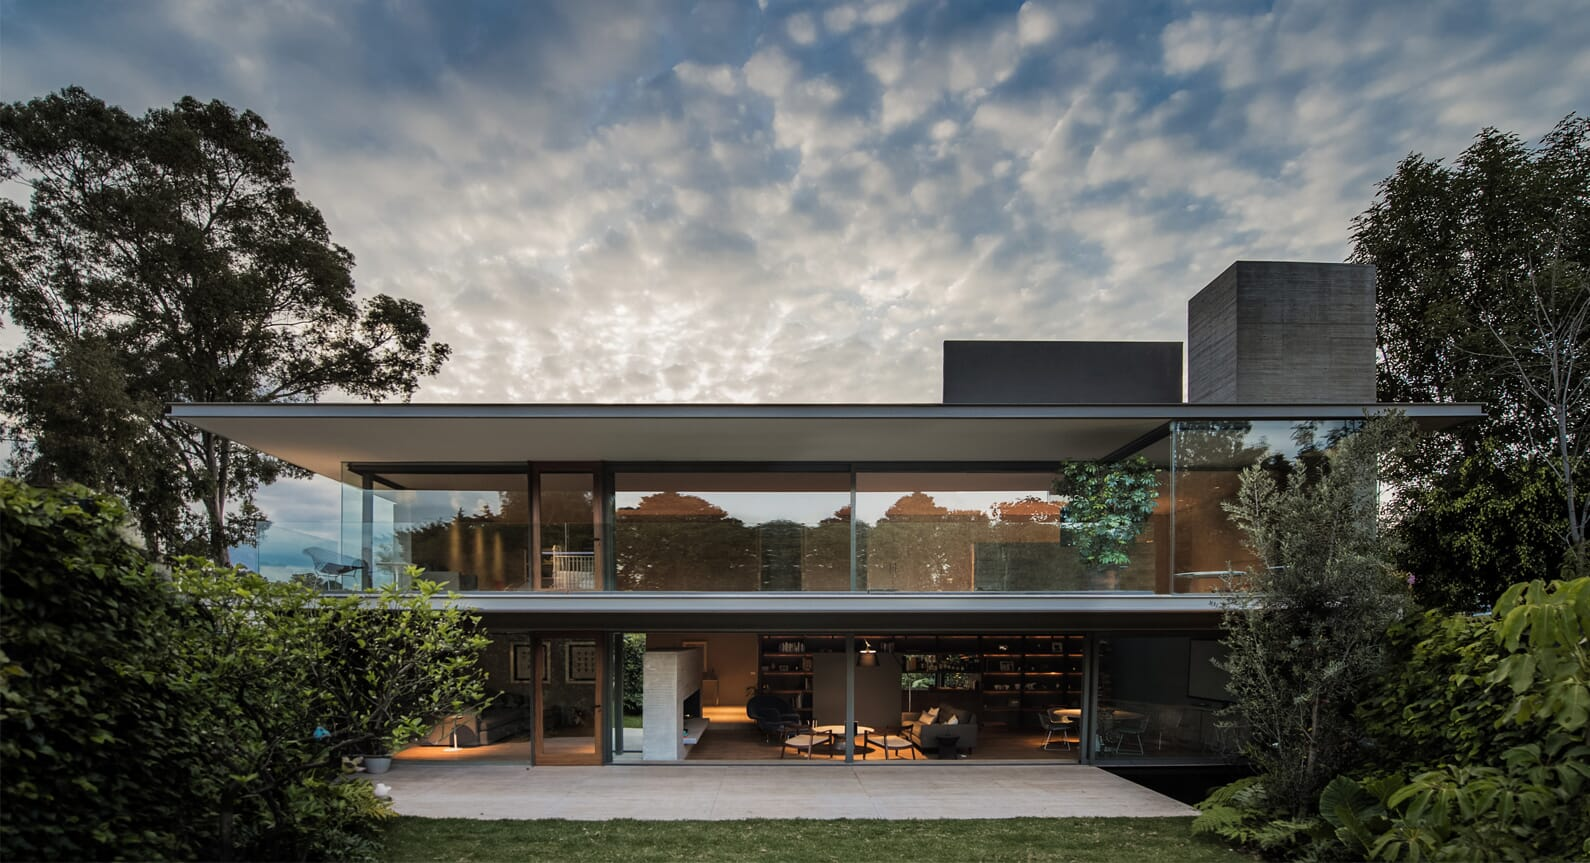 The 1940s-Inspired Casa Ramos By JJRR Architecture